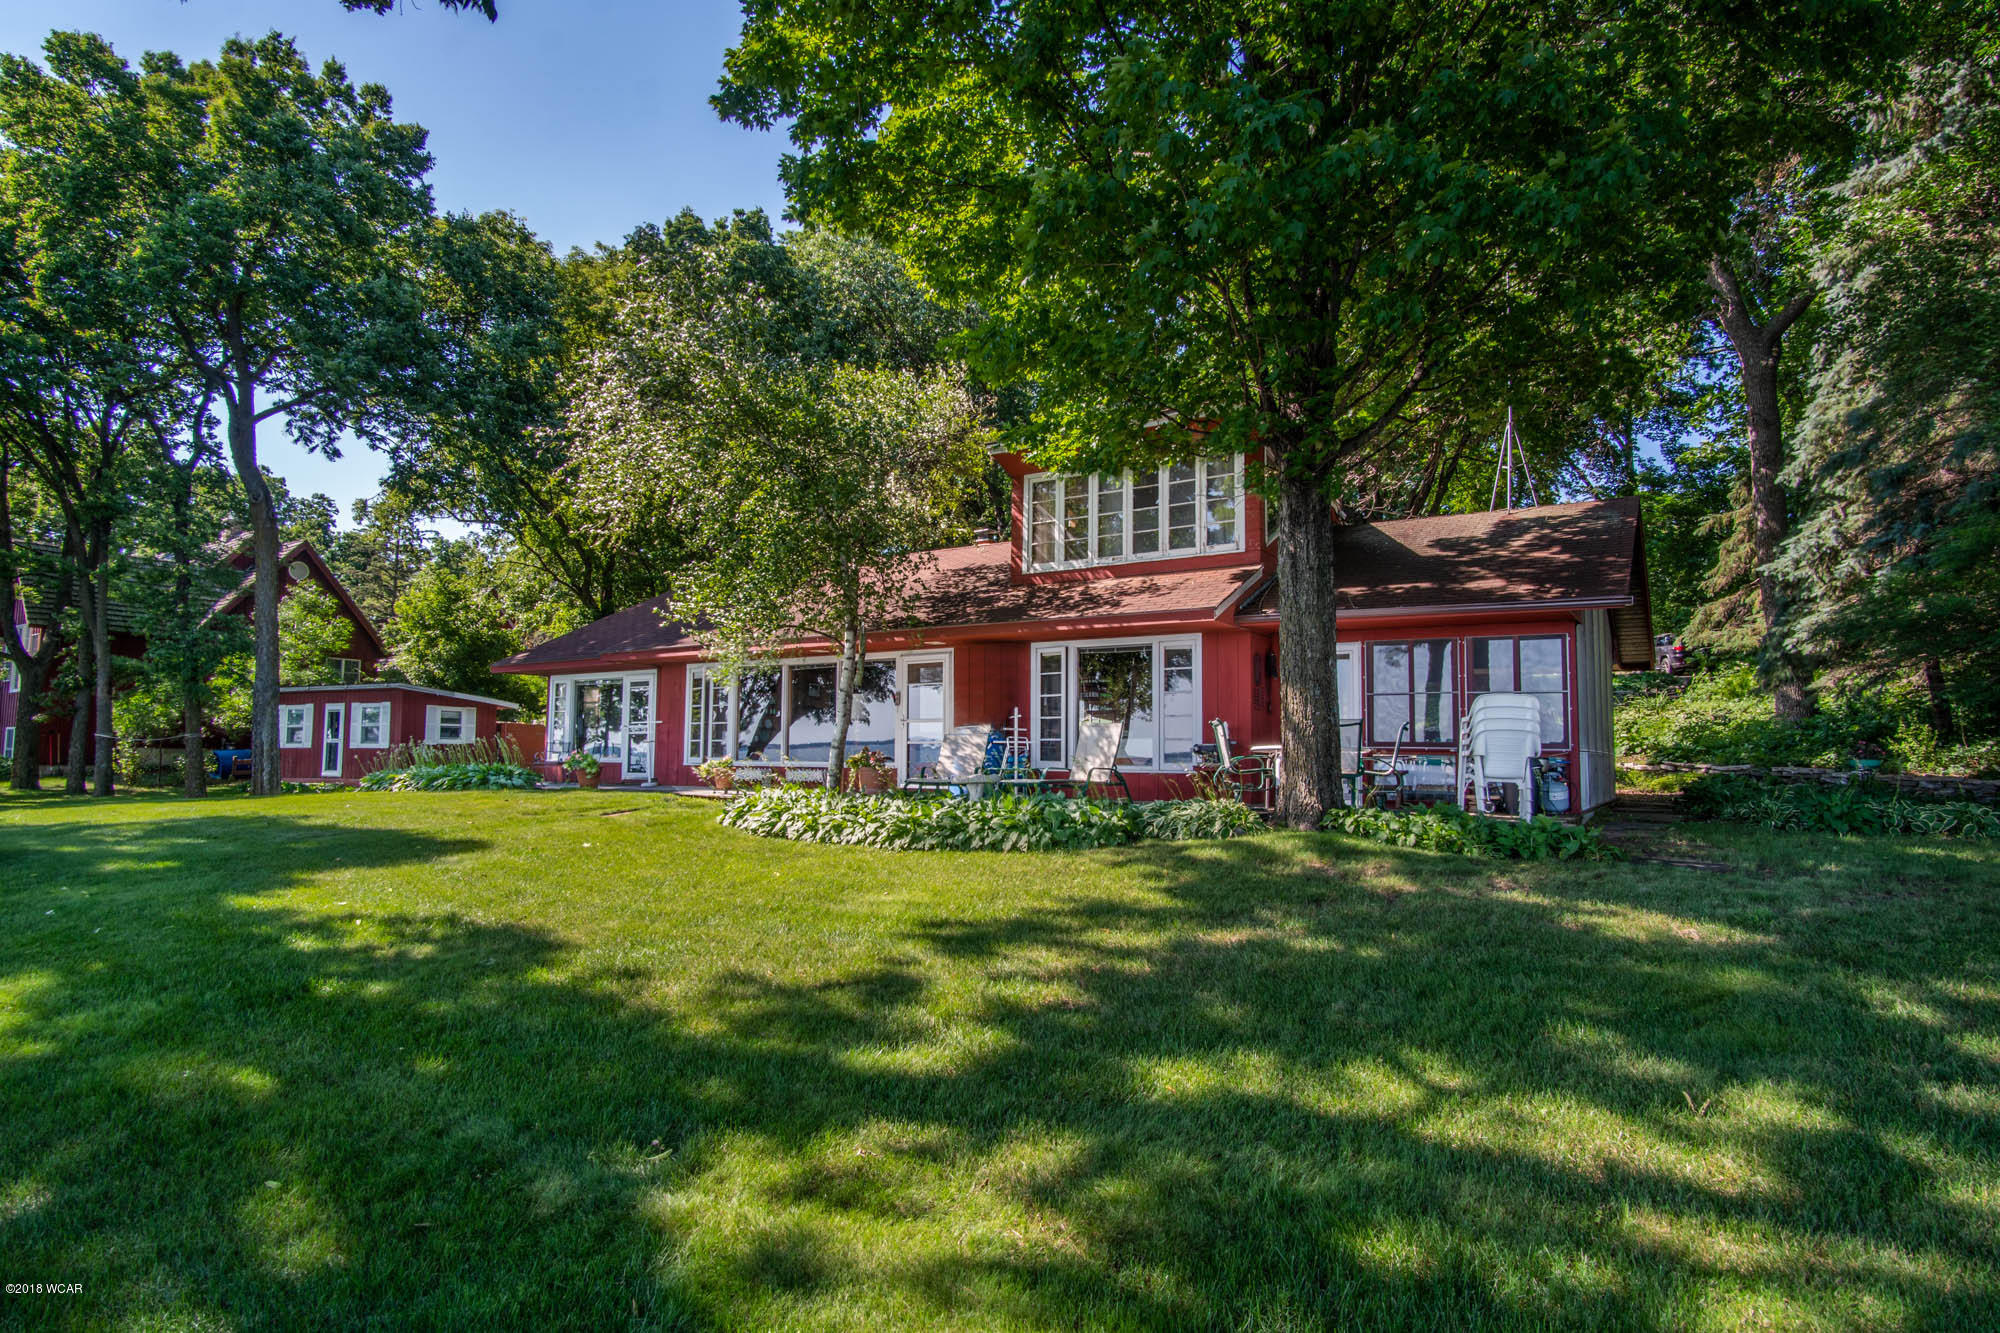 11379 North Shore Drive,Spicer,3 Bedrooms Bedrooms,2 BathroomsBathrooms,Single Family,North Shore Drive,6031549